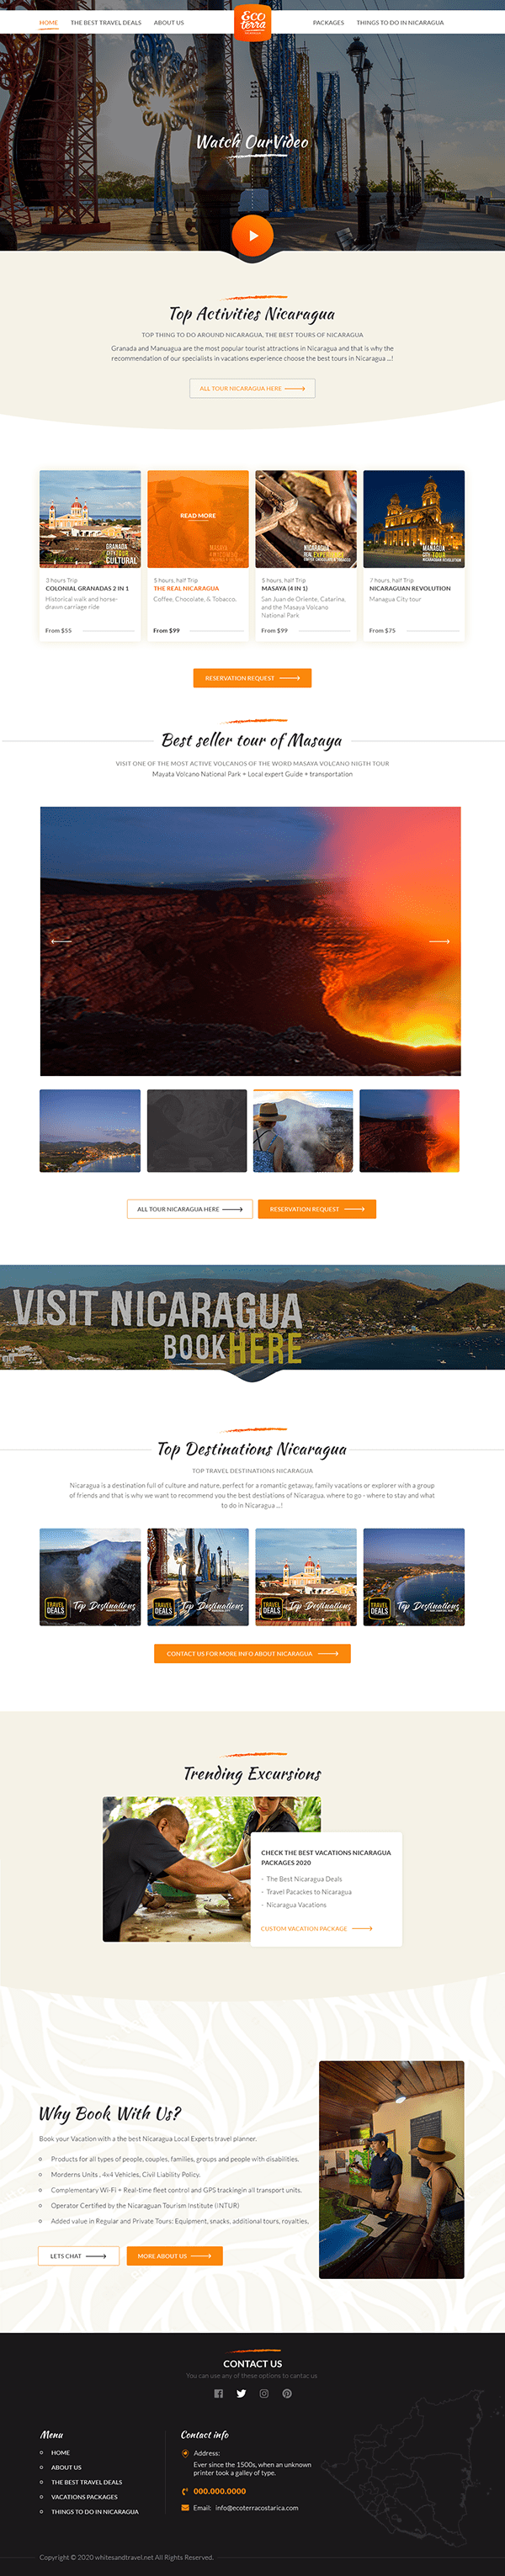 Travel Agency Tourism Website Design By Nexstair Tech On Student Show